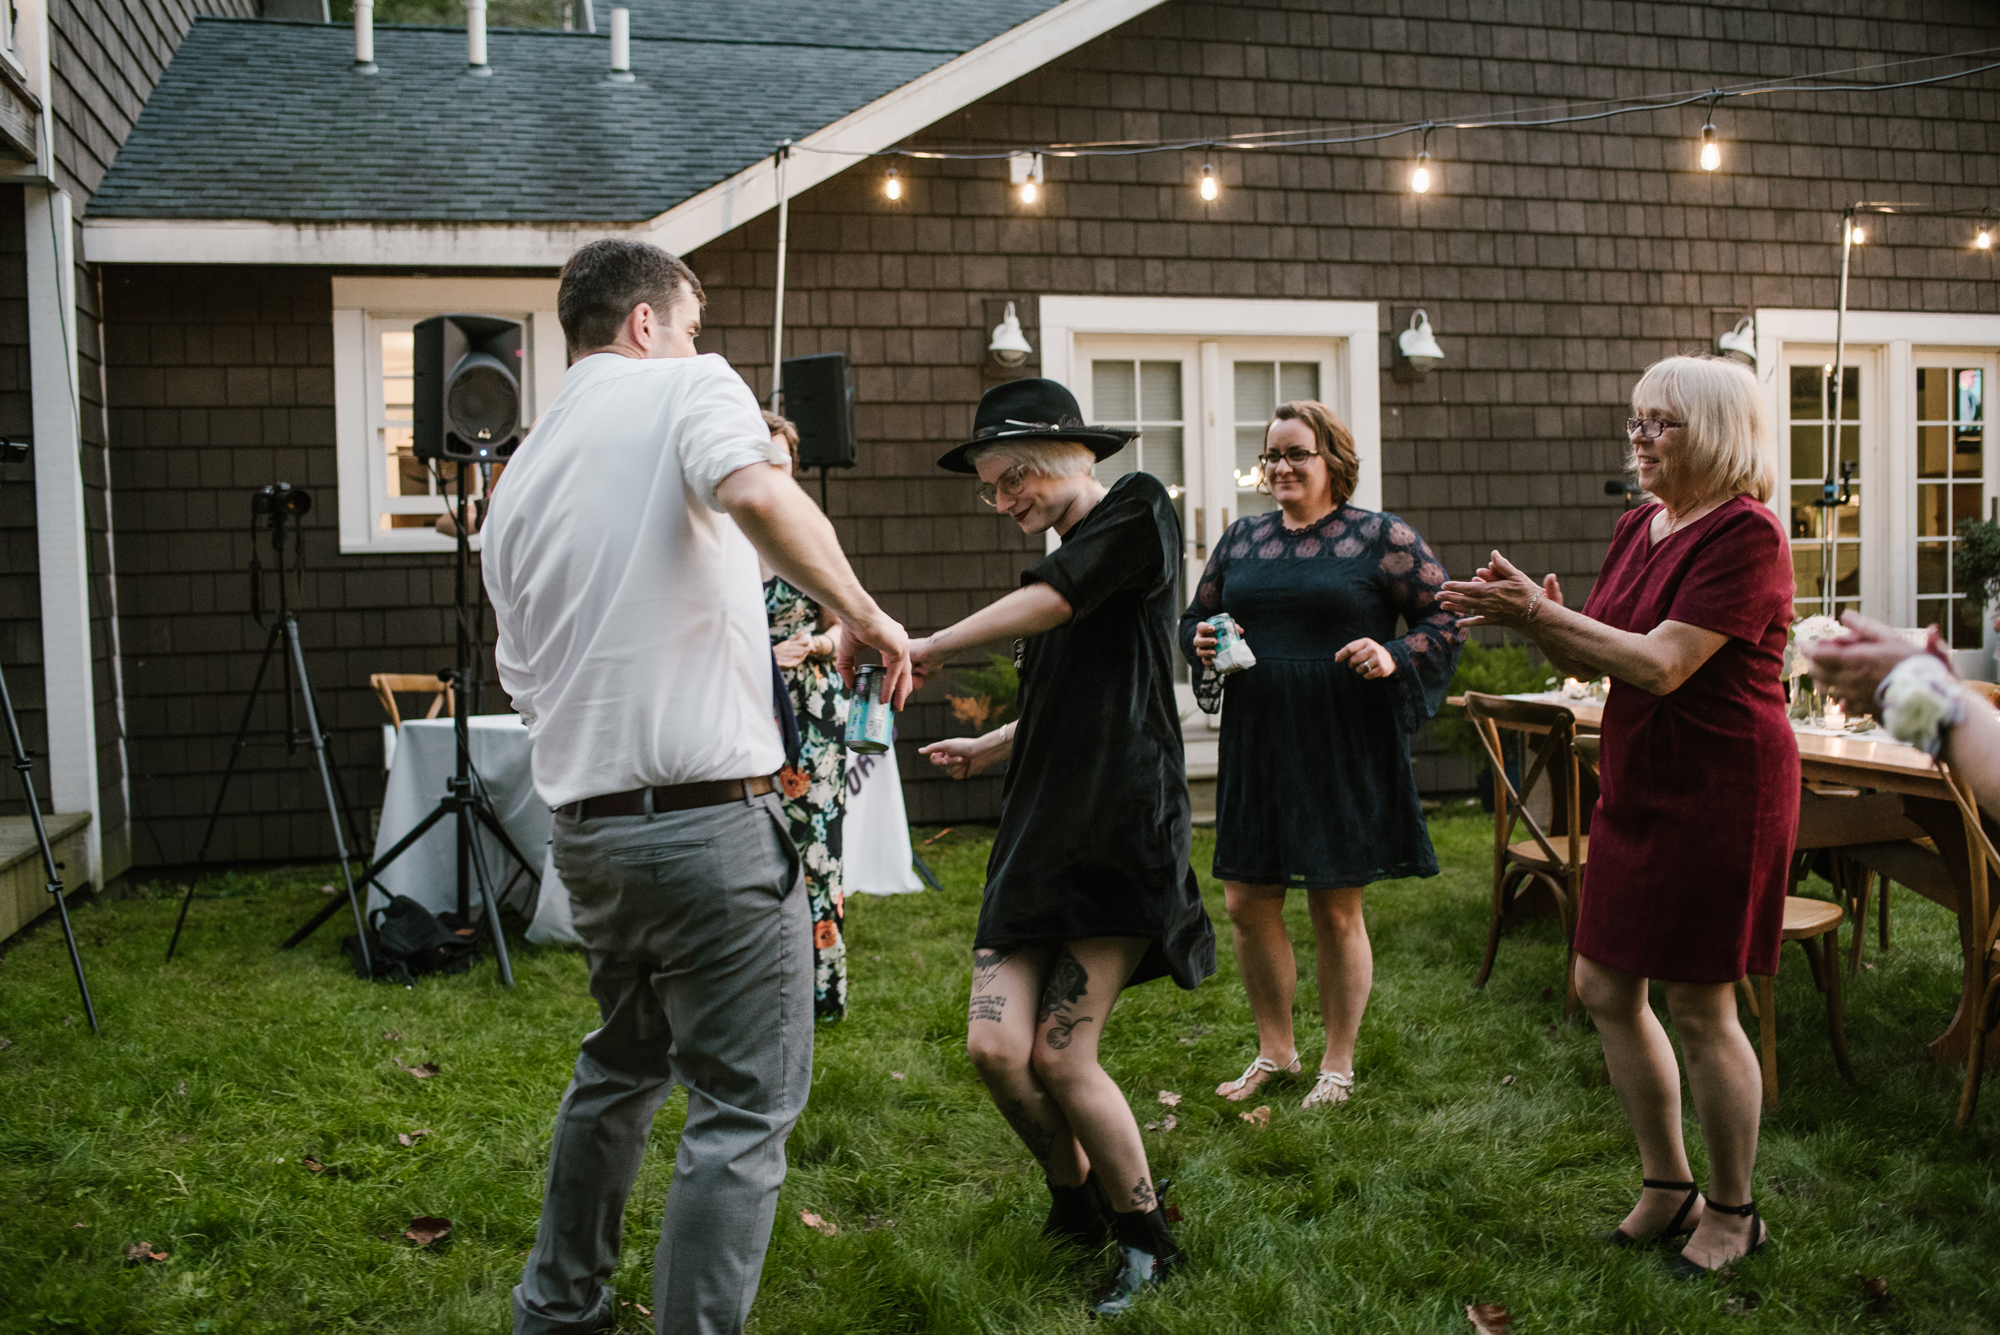 sawyer-michigan-backyard-wedding-dancing-pictures-sydney-marie (15).jpg